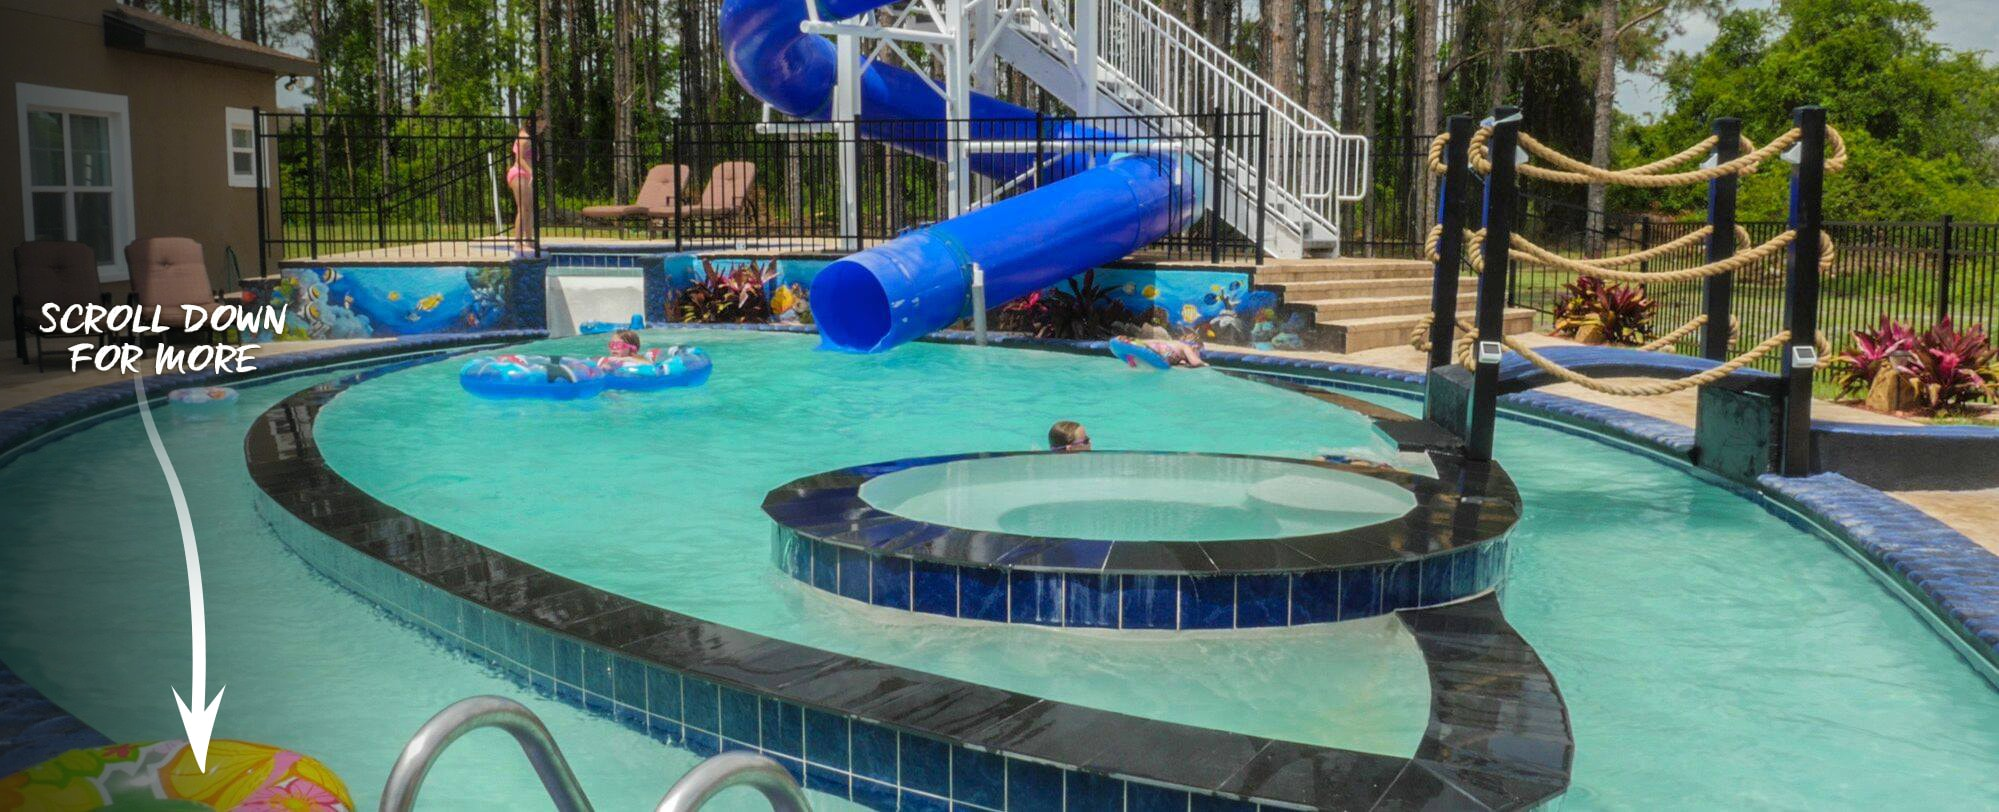 The Great Ecscape Lakeside's (vacation rental home) GO FISH pool and lazy river with home waterslide!